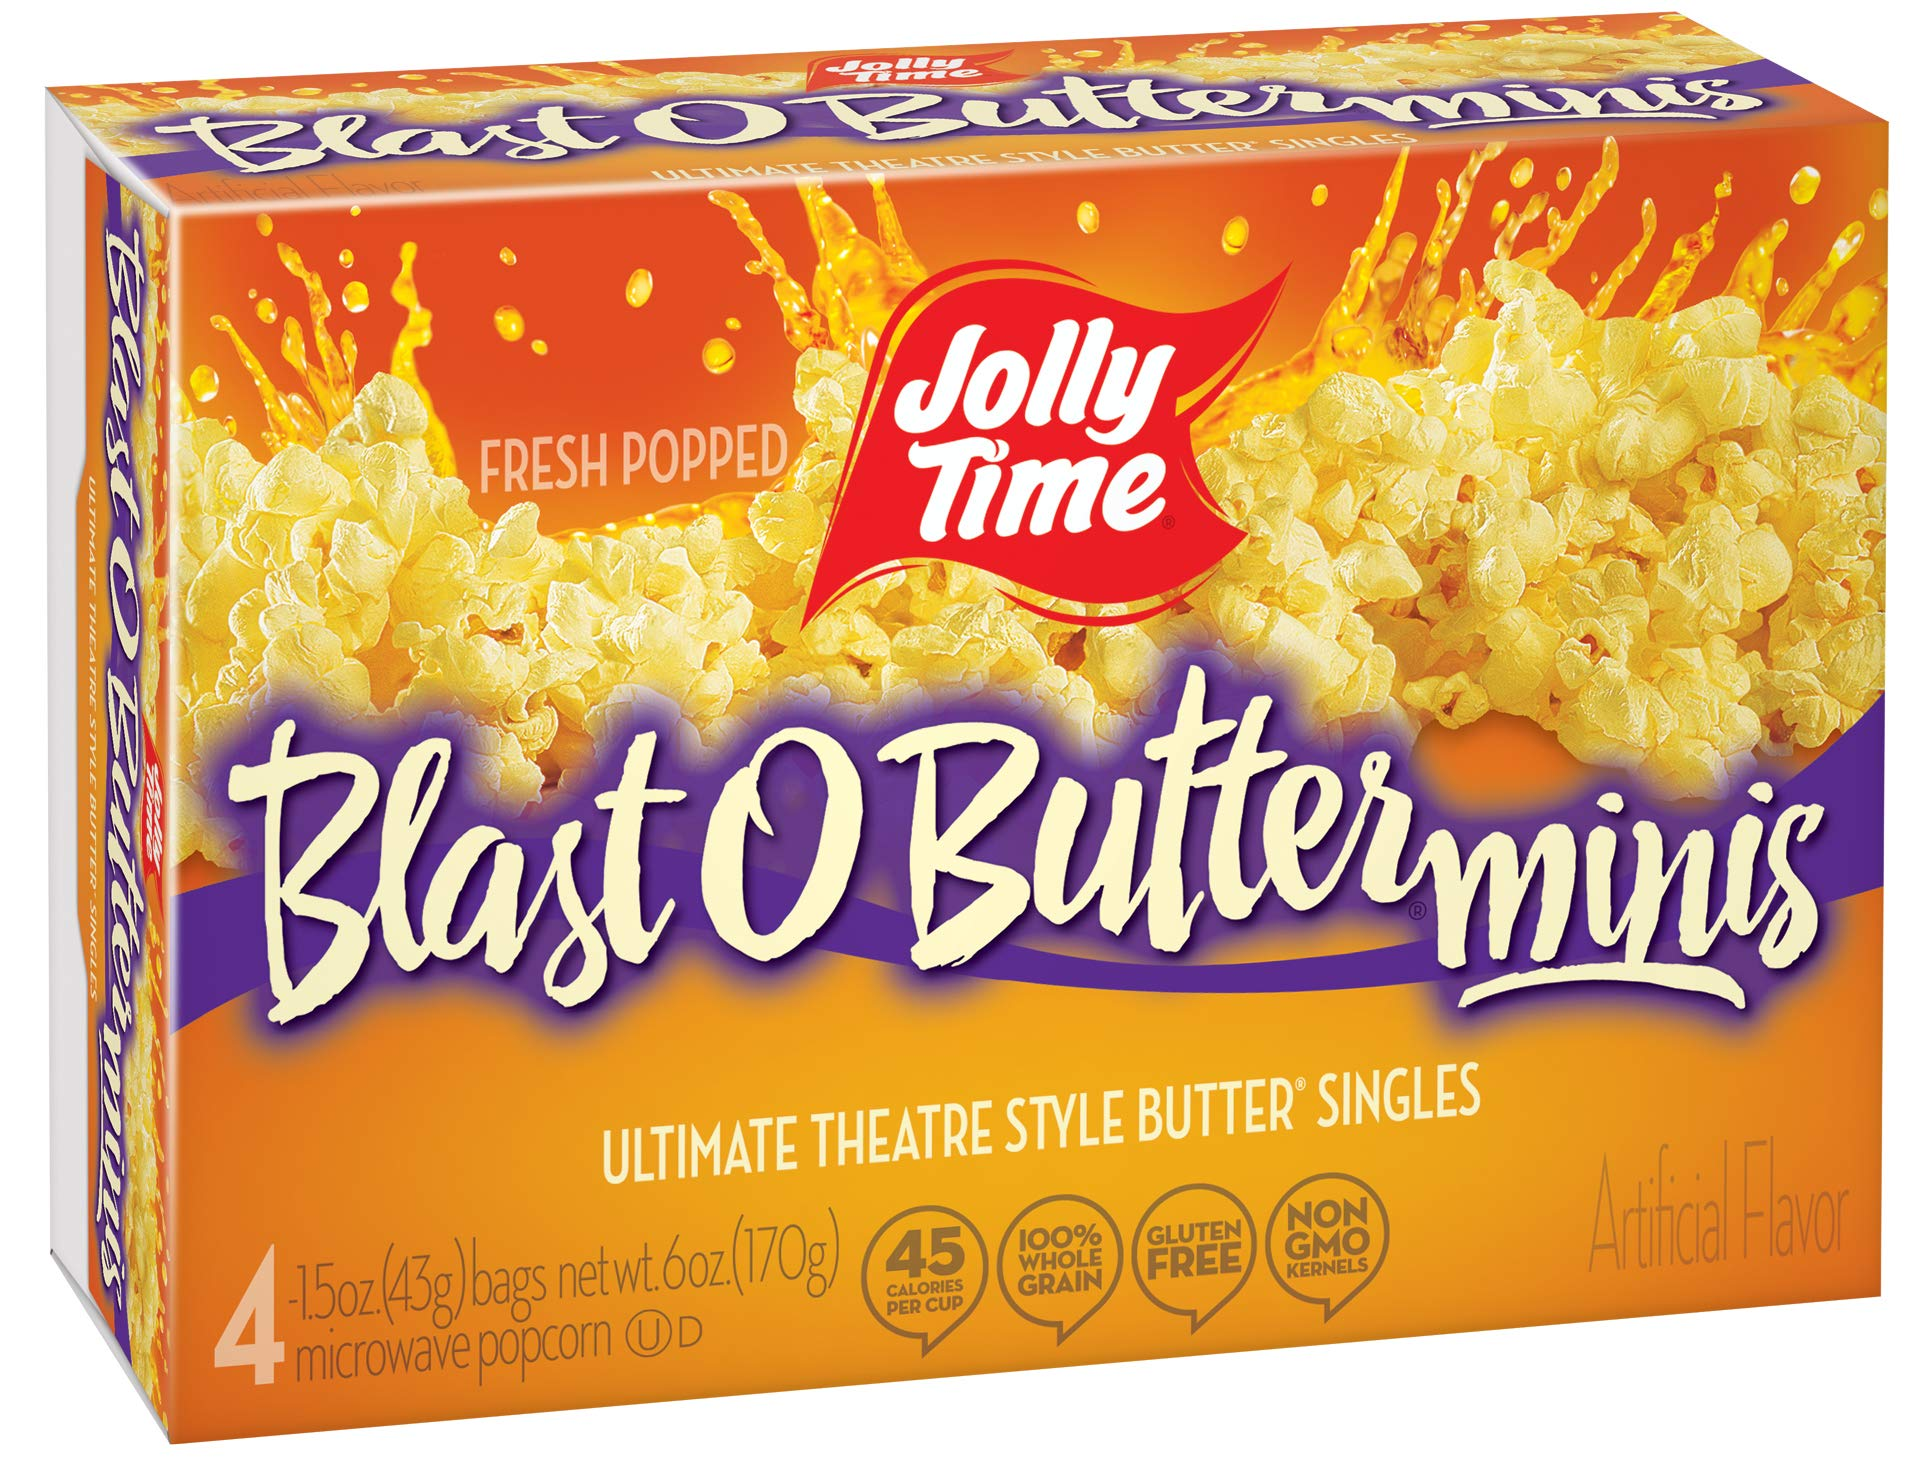 Jolly Time Blast O Butter Movie Theater Microwave Popcorn Mini Bags, 4-Count Boxes (Pack of 12) by Jolly Time (Image #1)